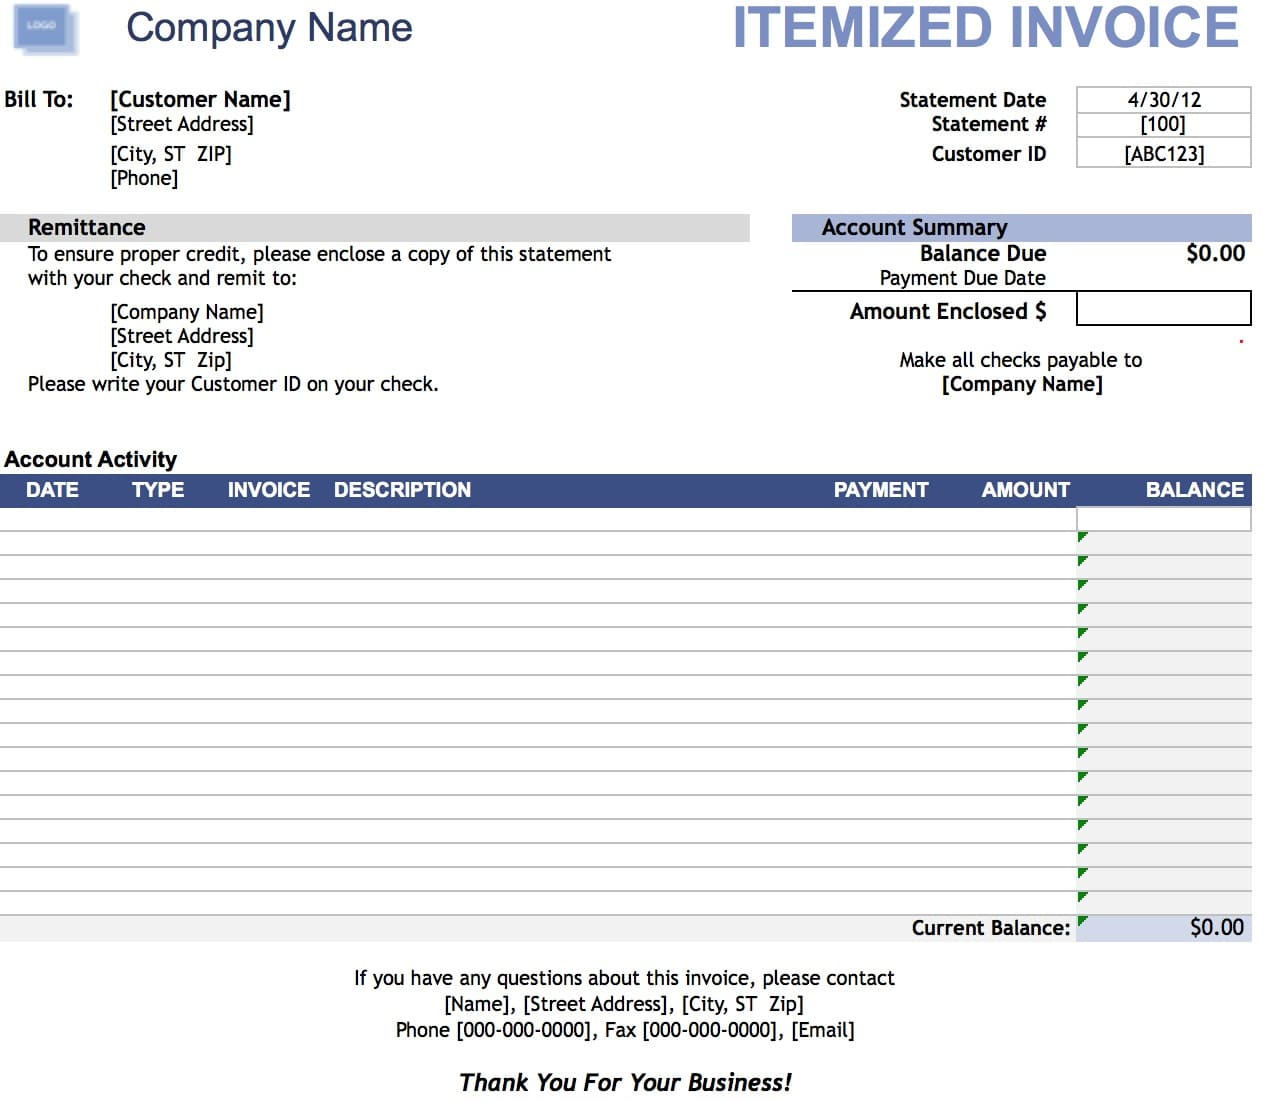 Free Itemized Invoice Template Excel PDF Word Doc - Invoice sample word for service business